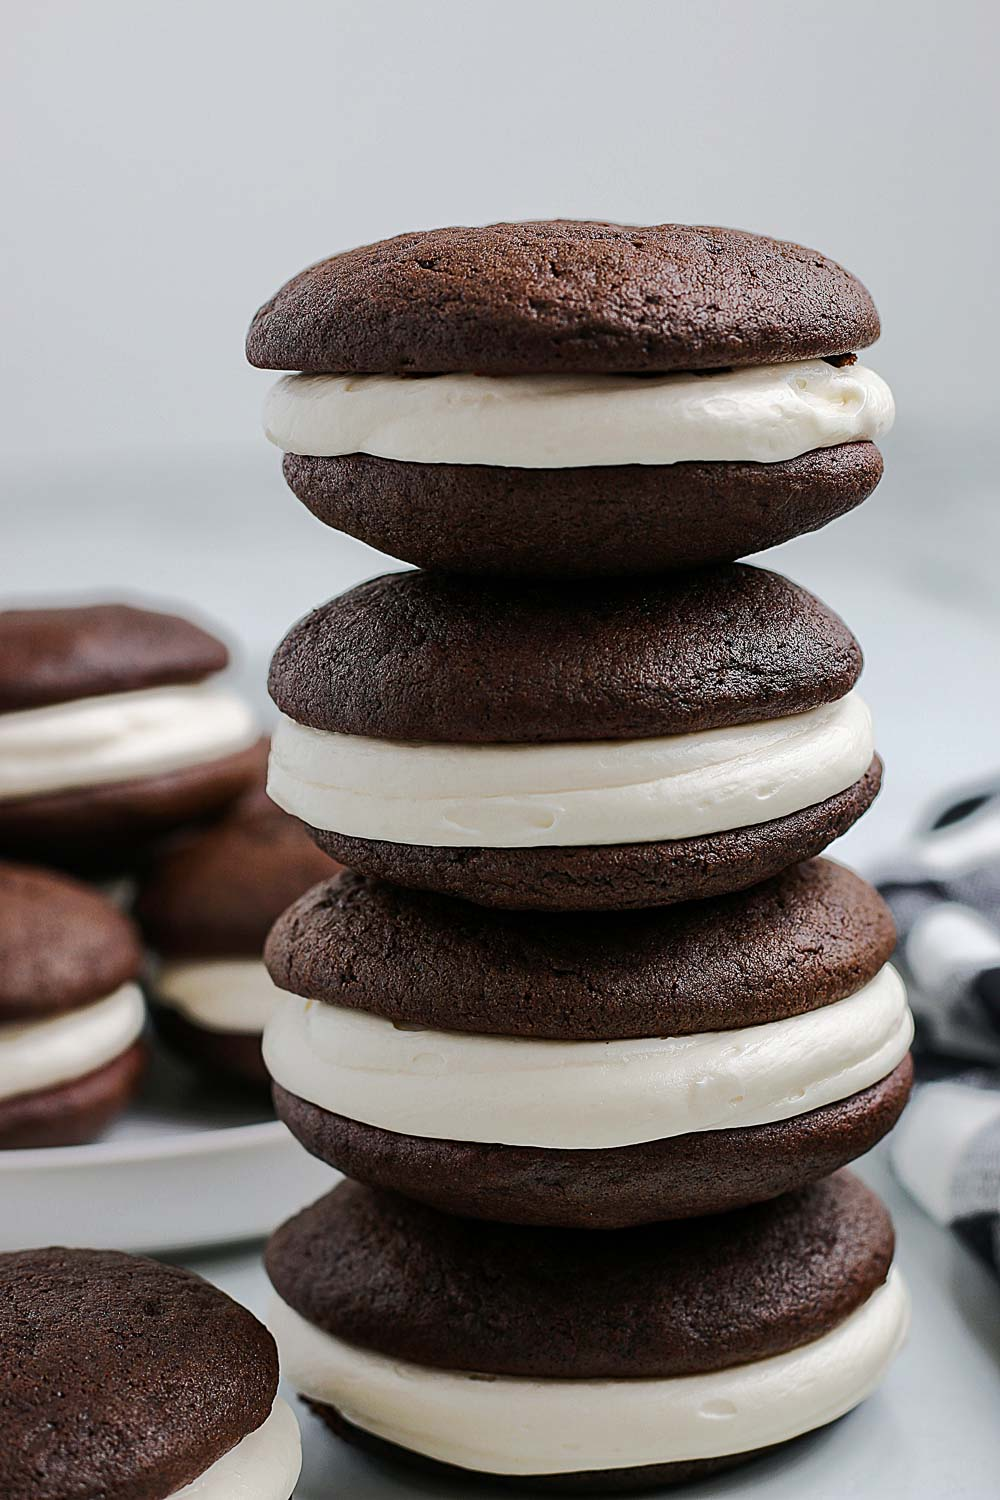 Four Whoopie Pies stacked on top of each other.